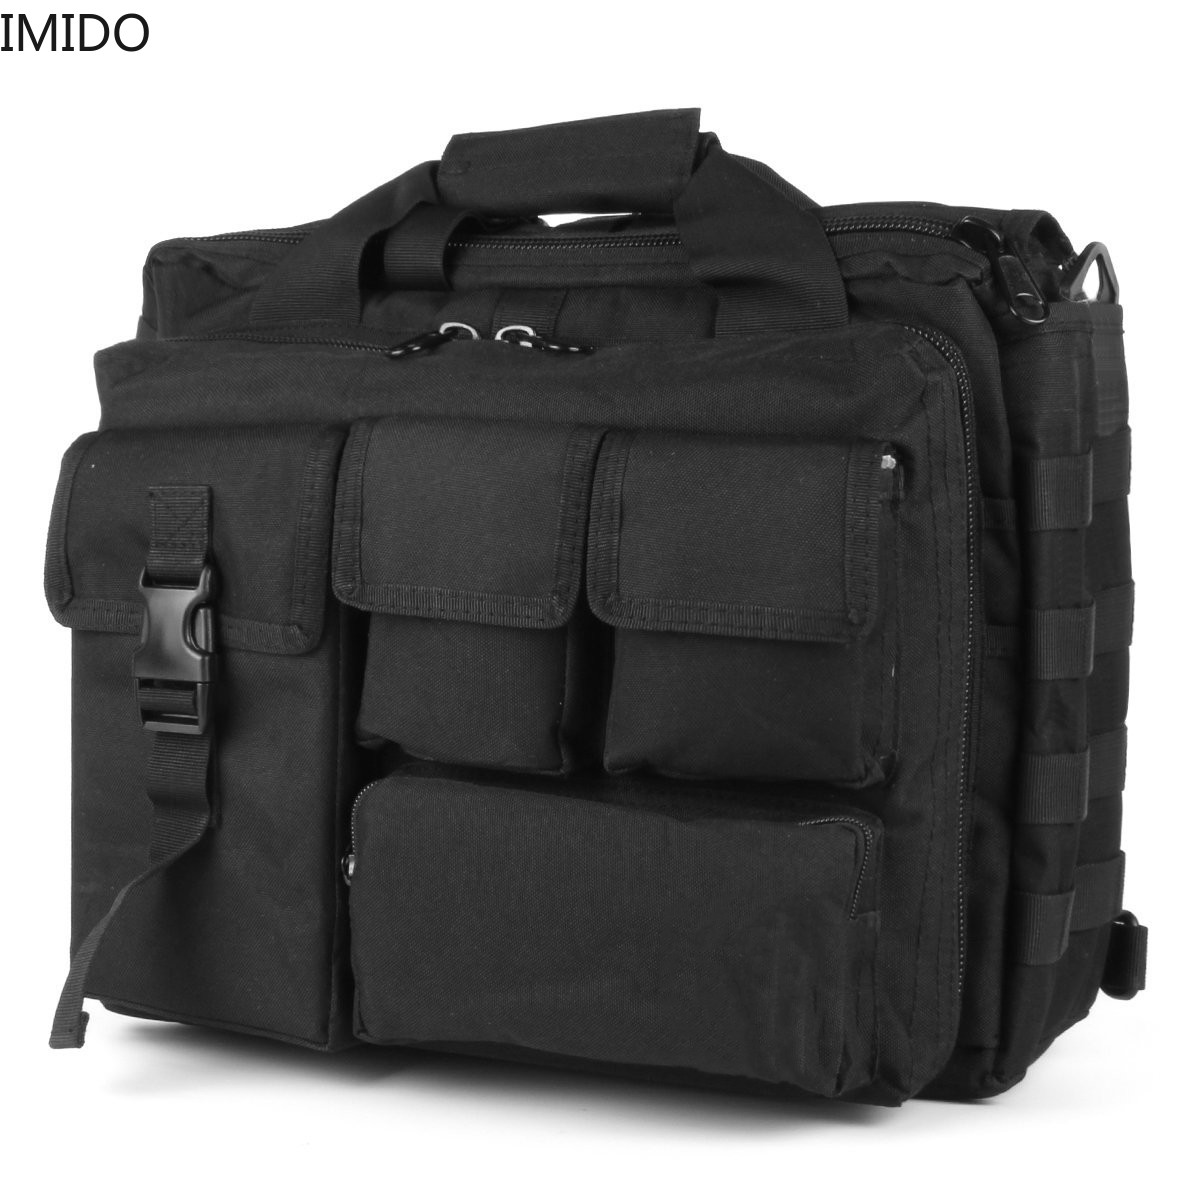 IMIDO Military Shoulder Bag Multifunction Tactical Army Sling Bags Messenger Laptop Handbags Outdoor Climbing Hiking Pouch PackIMIDO Military Shoulder Bag Multifunction Tactical Army Sling Bags Messenger Laptop Handbags Outdoor Climbing Hiking Pouch Pack